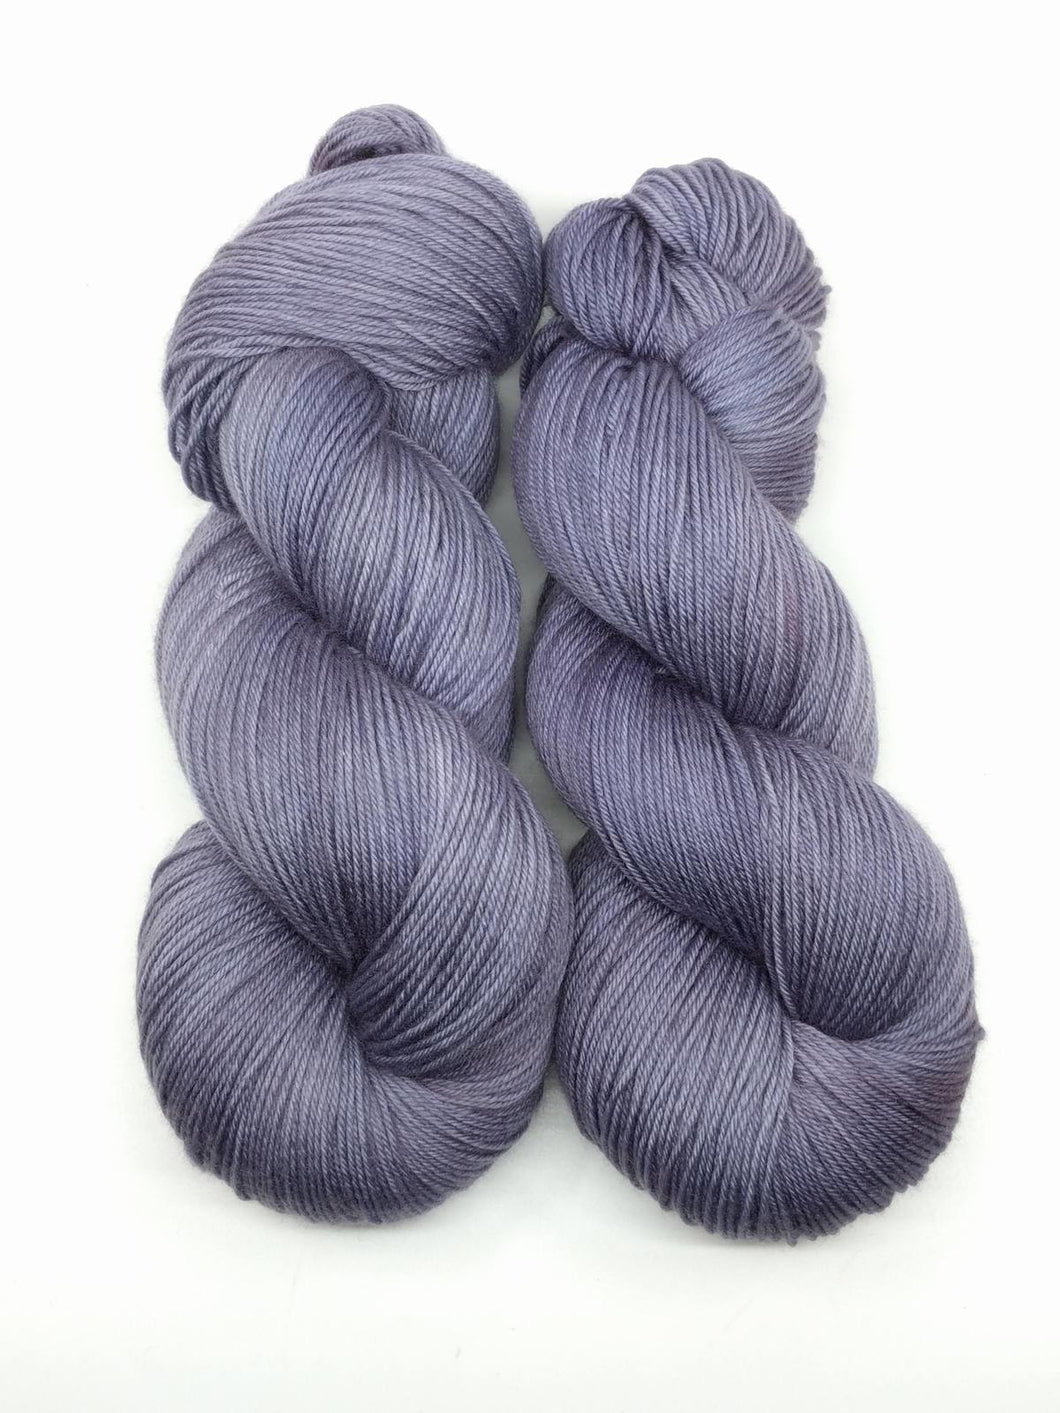 MOUNTAIN SHADOW - Merino Twist